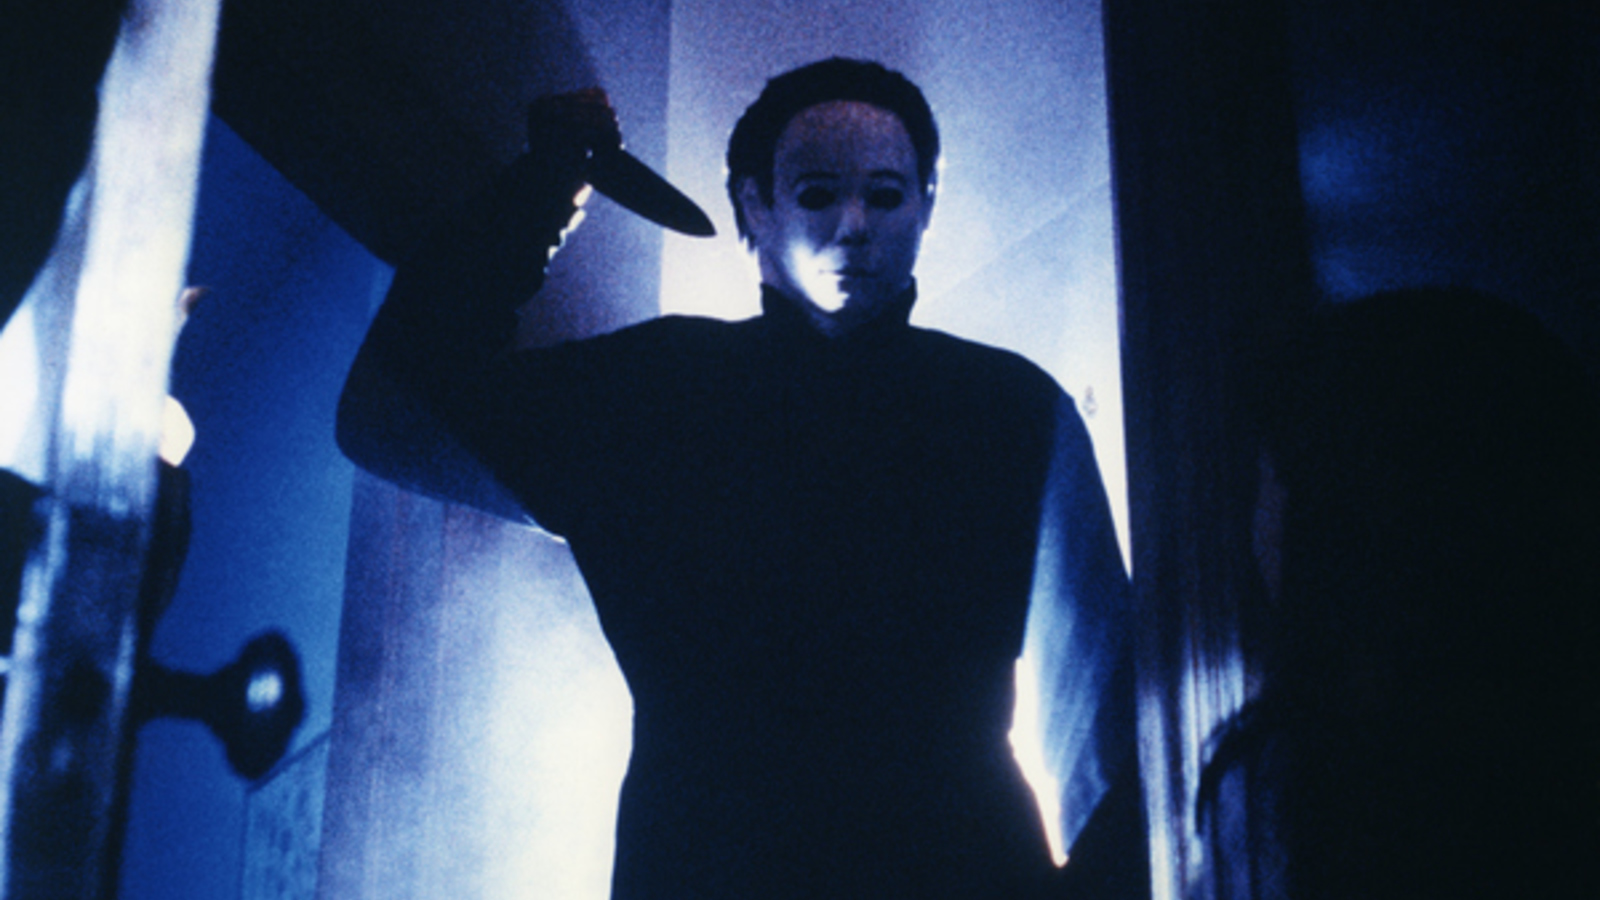 The 25 best Halloween films of all time